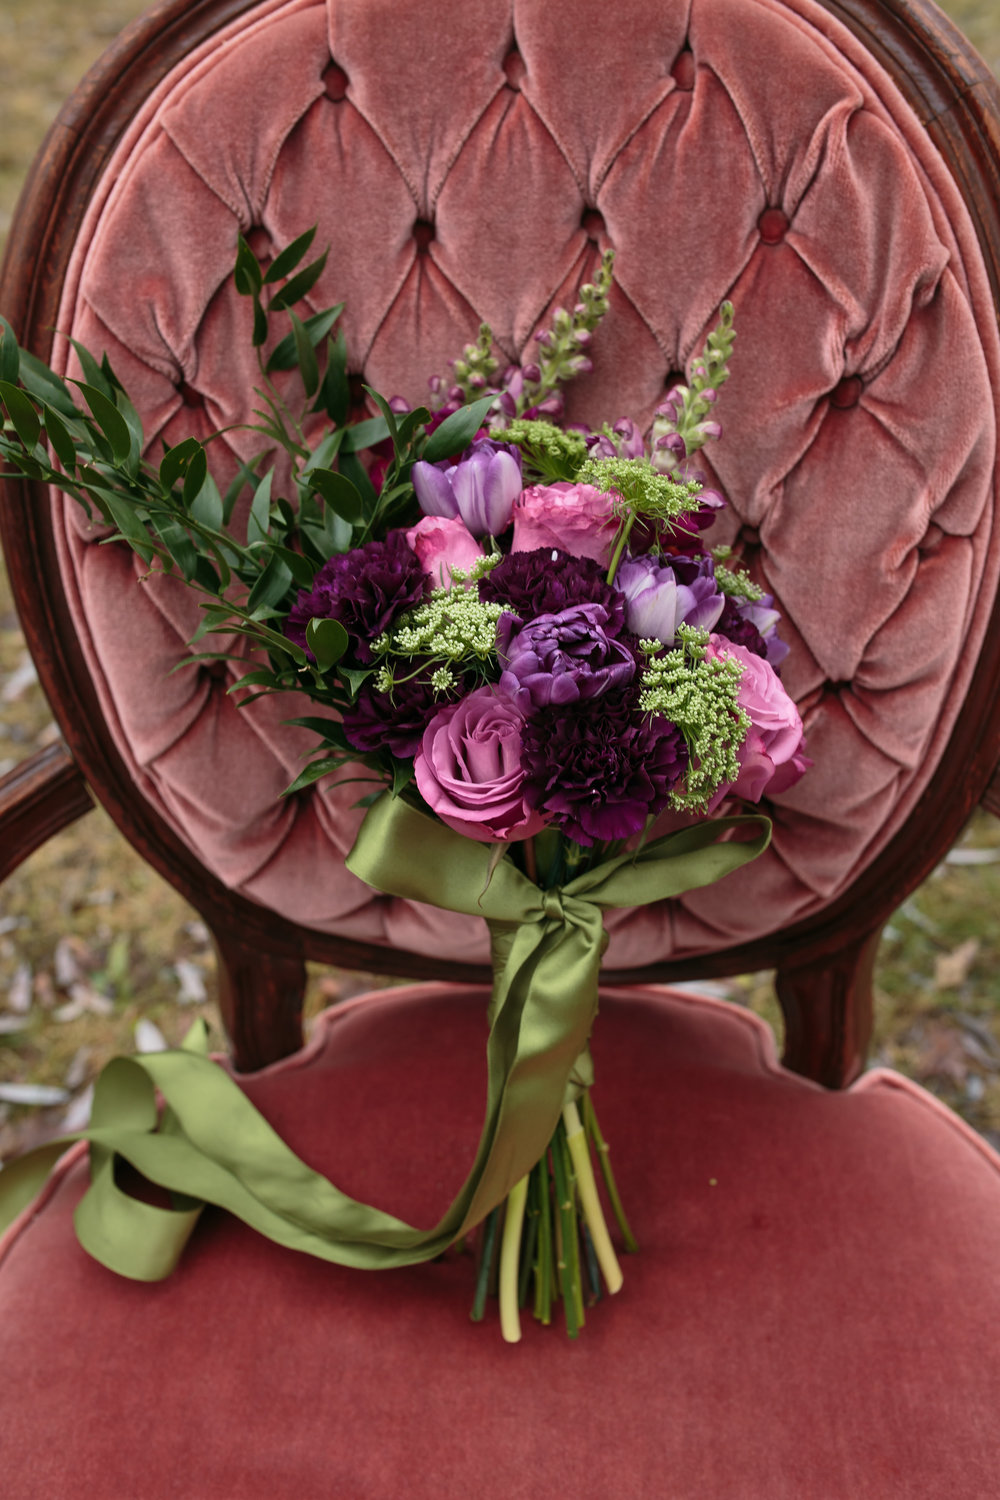 Flowers and Finds_26.JPG